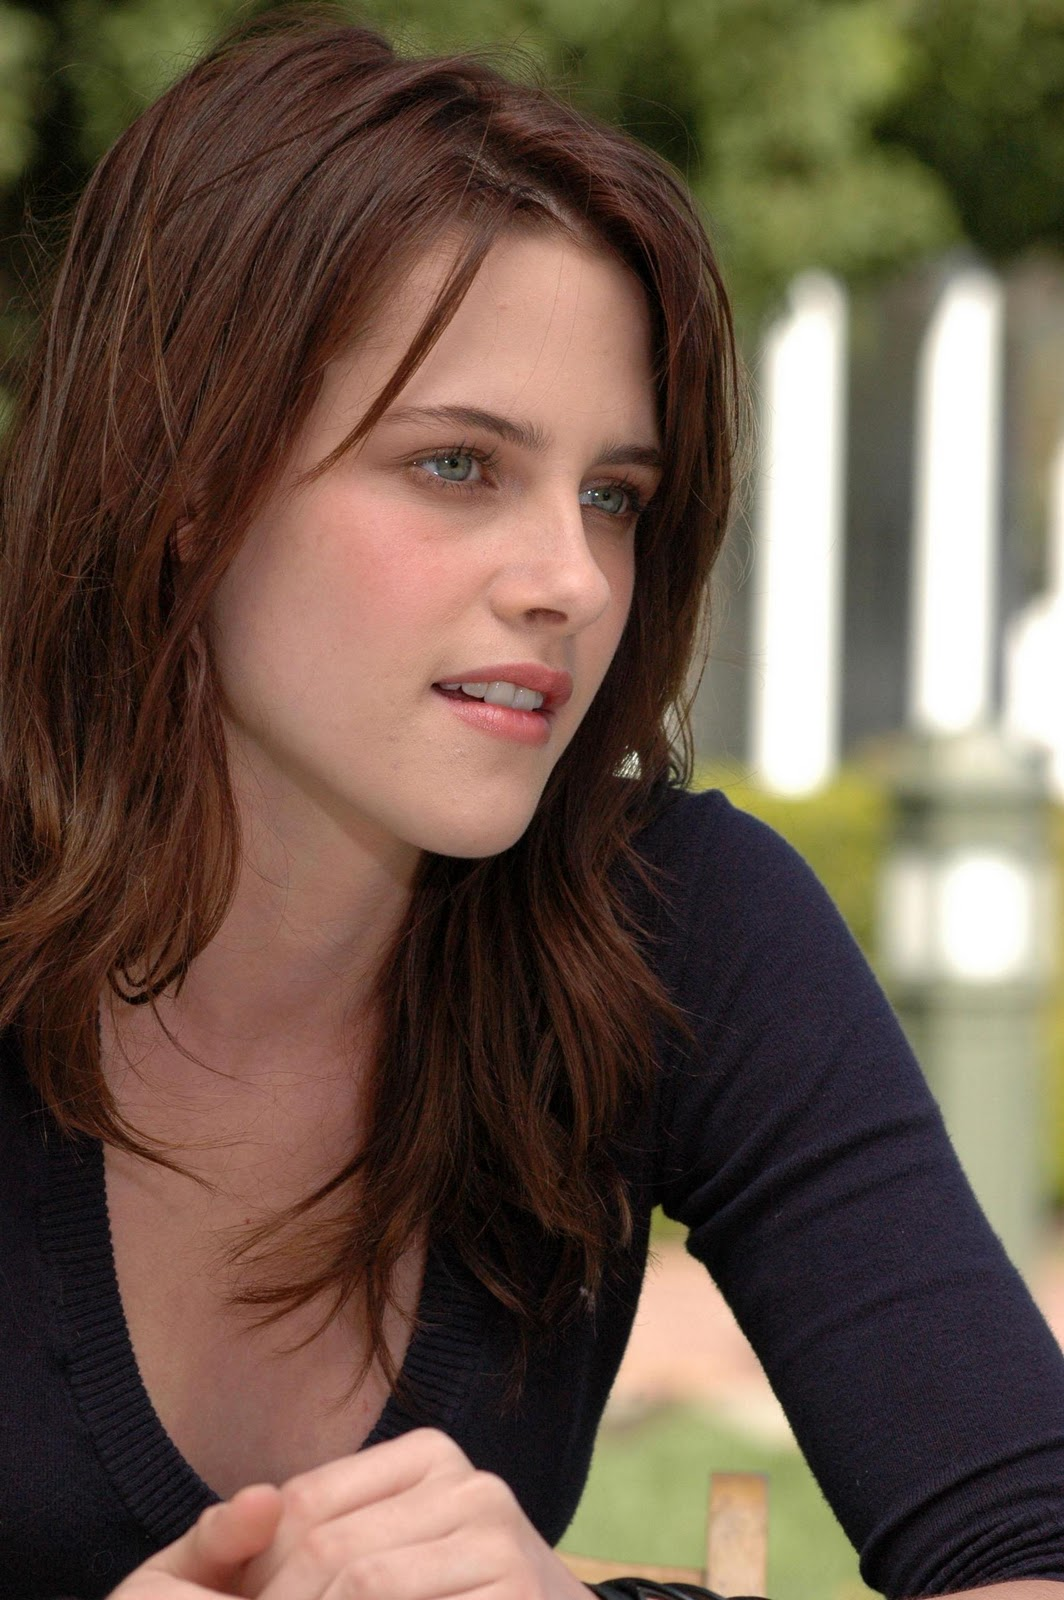 Download this Kristen Stewart Biography And Images Photos picture